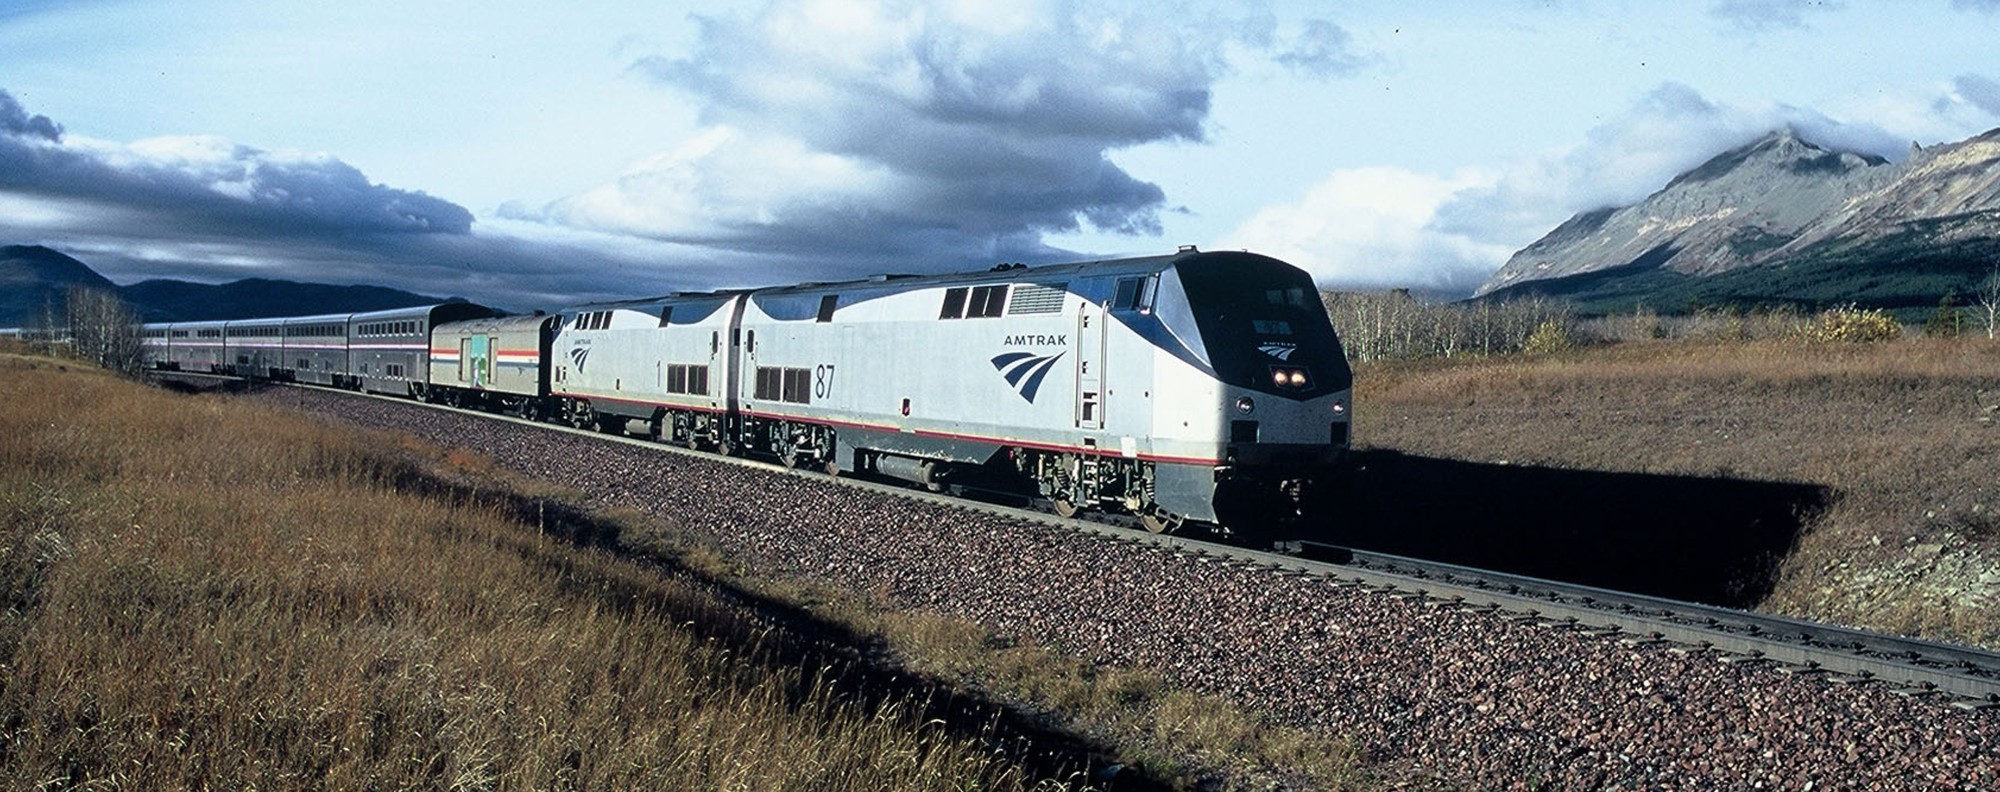 The Empire Builder. Picture: Amtrak